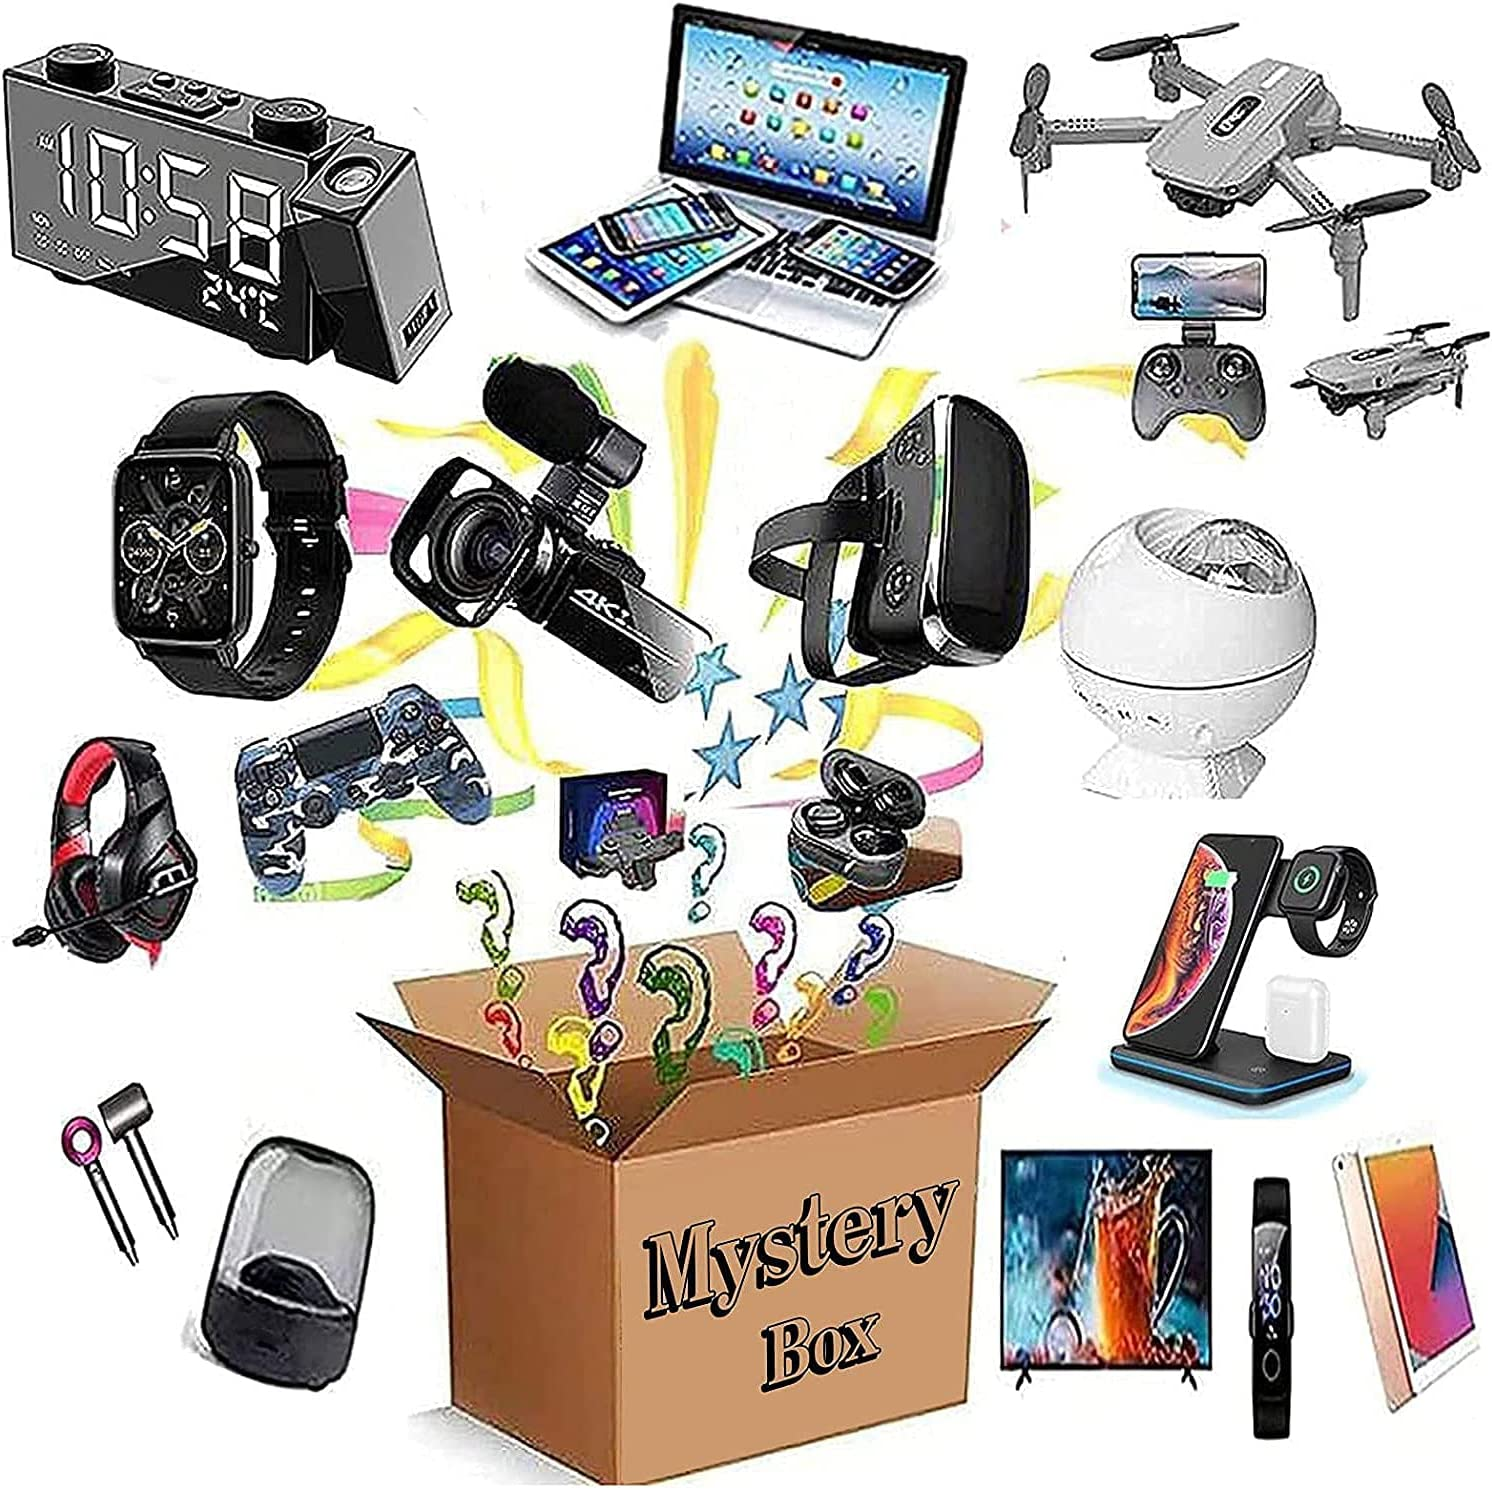 Mystery Items Max 63% OFF for Electronic Limited Special Price Gifts Surprise Makes Nice